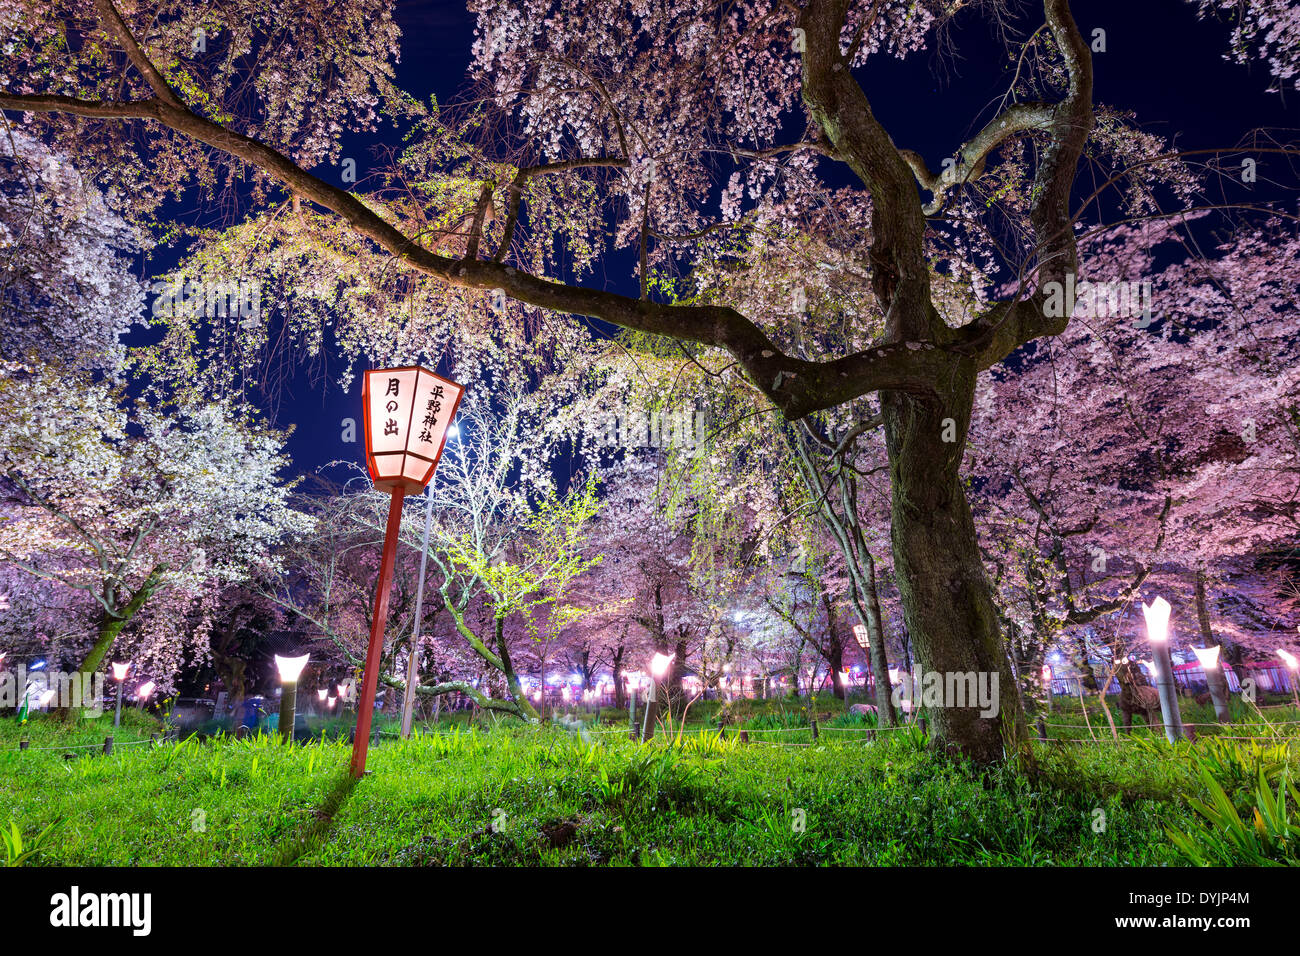 """Kyoto, Japan at Hirano Temple festival grounds in spring. The lantern reads """"Moonrise, Hirano Temple"""" Stock Photo"""